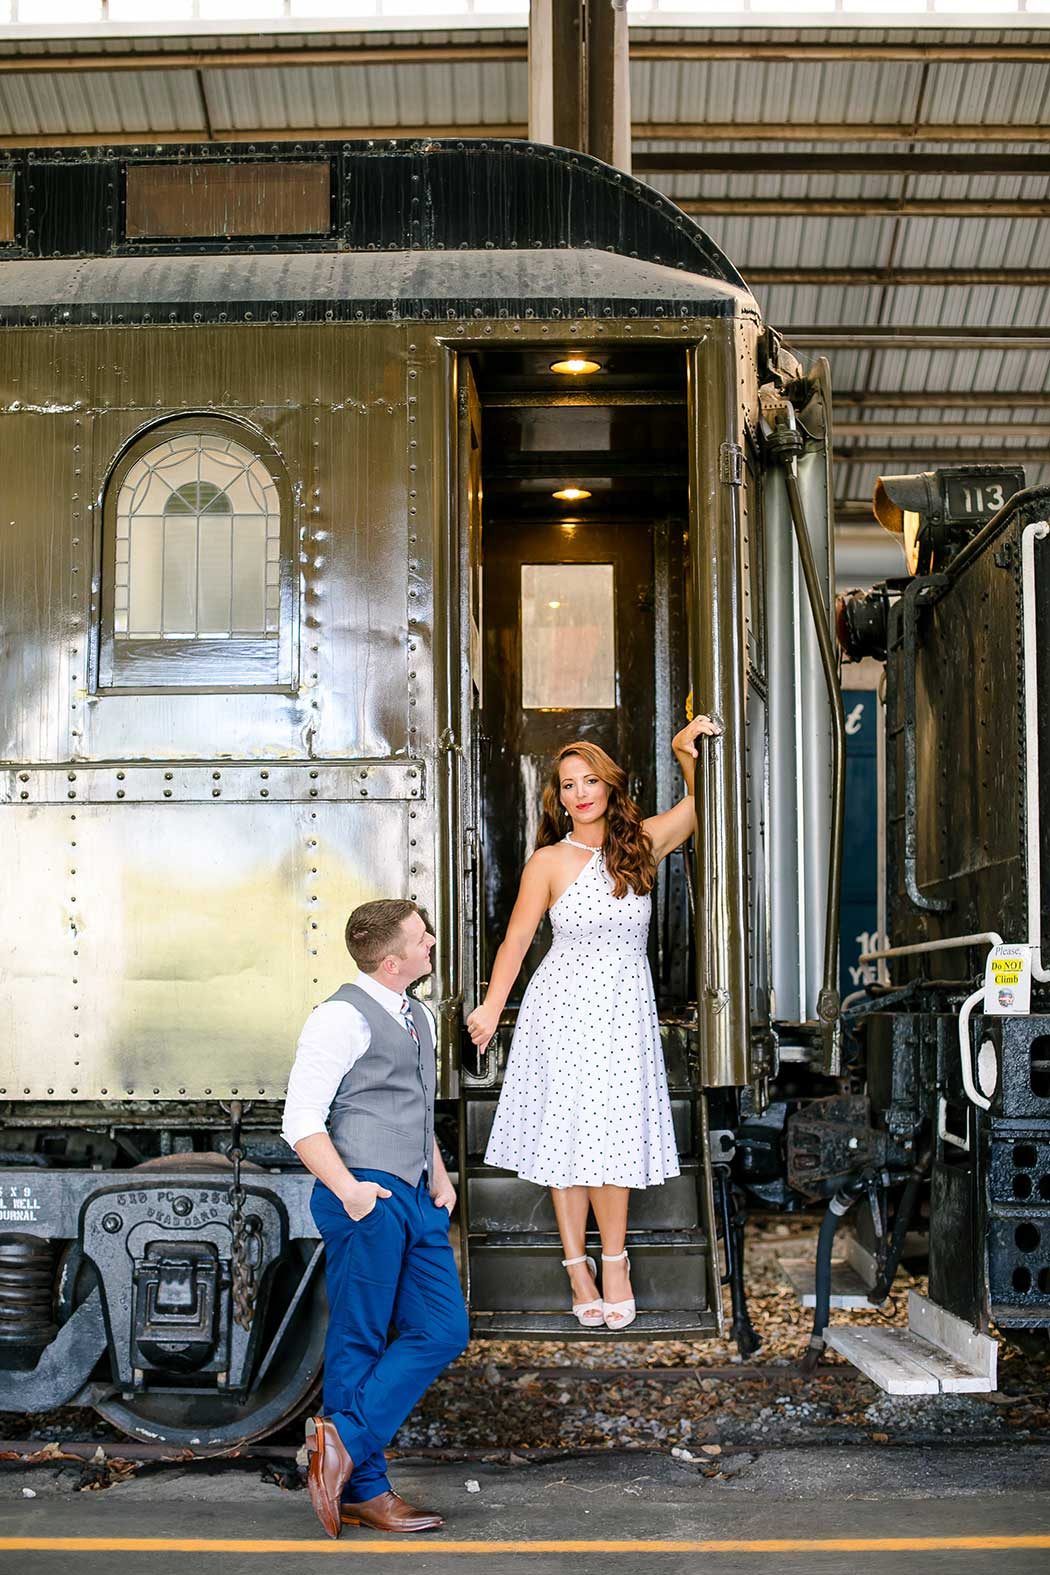 posing ideas on a train   engagement photography session at gold coast railroad museum miami   engagement photographer fort lauderdale